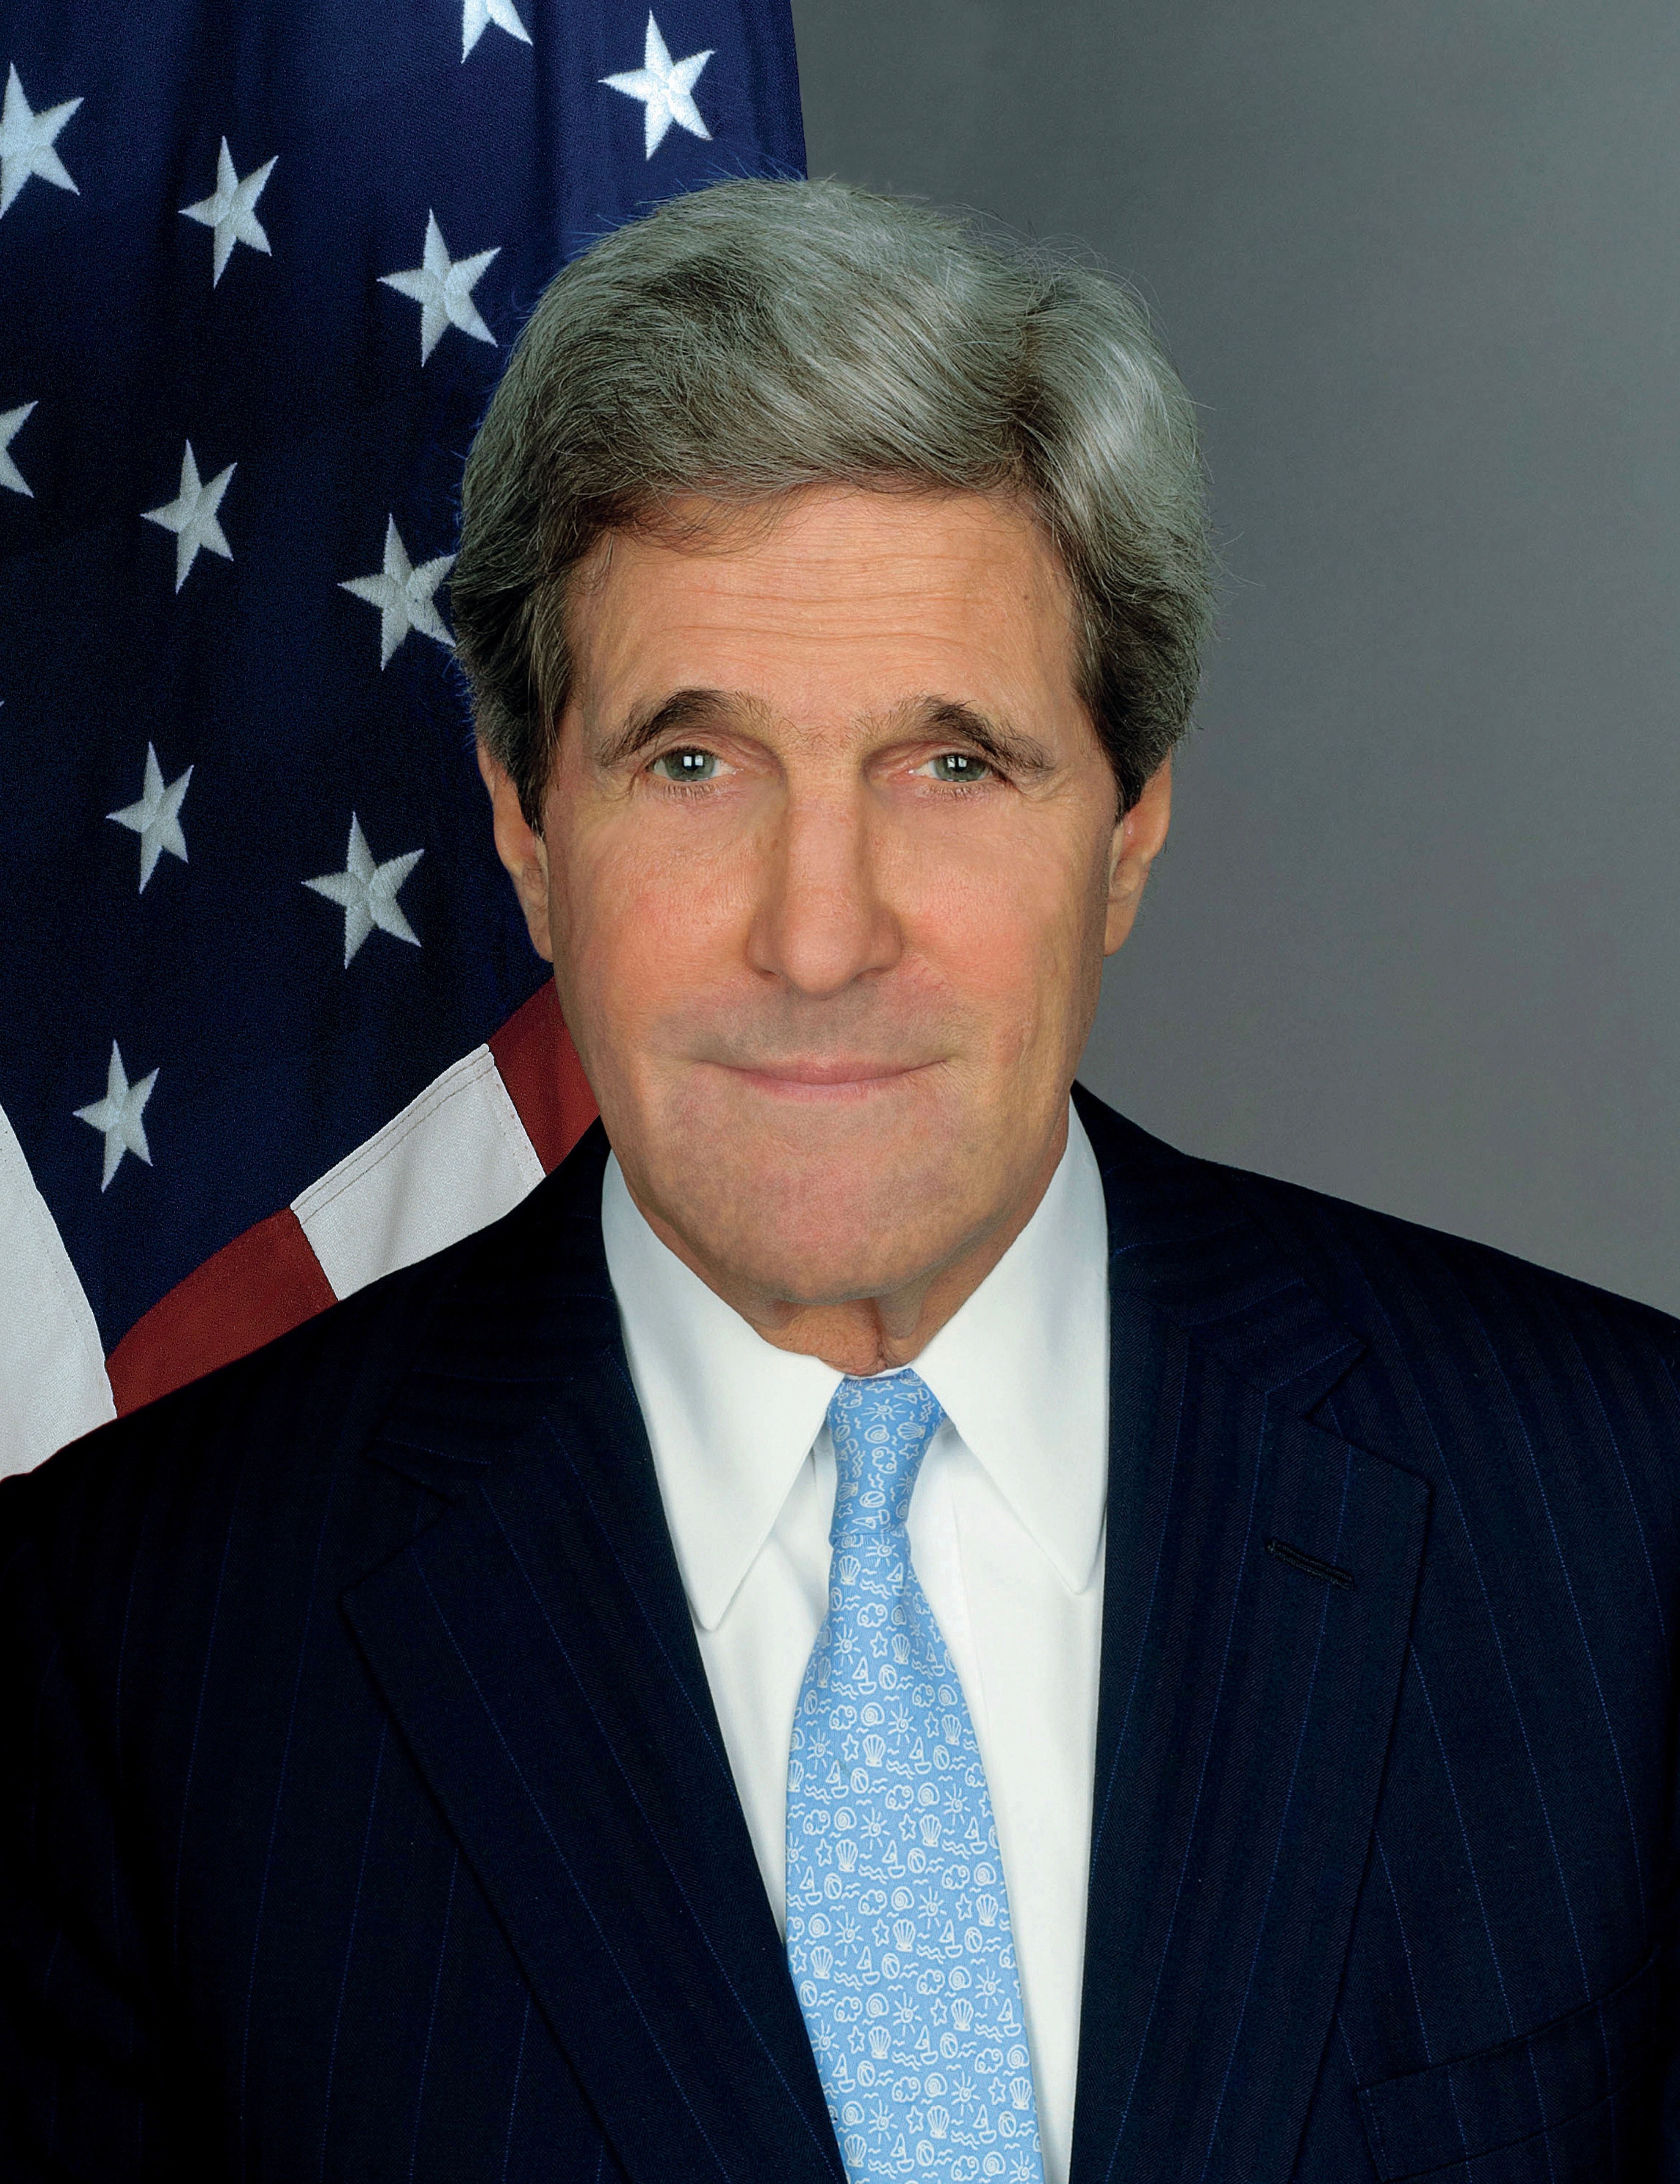 The 76-year old son of father (?) and mother(?) John Kerry in 2020 photo. John Kerry earned a million dollar salary - leaving the net worth at 194 million in 2020